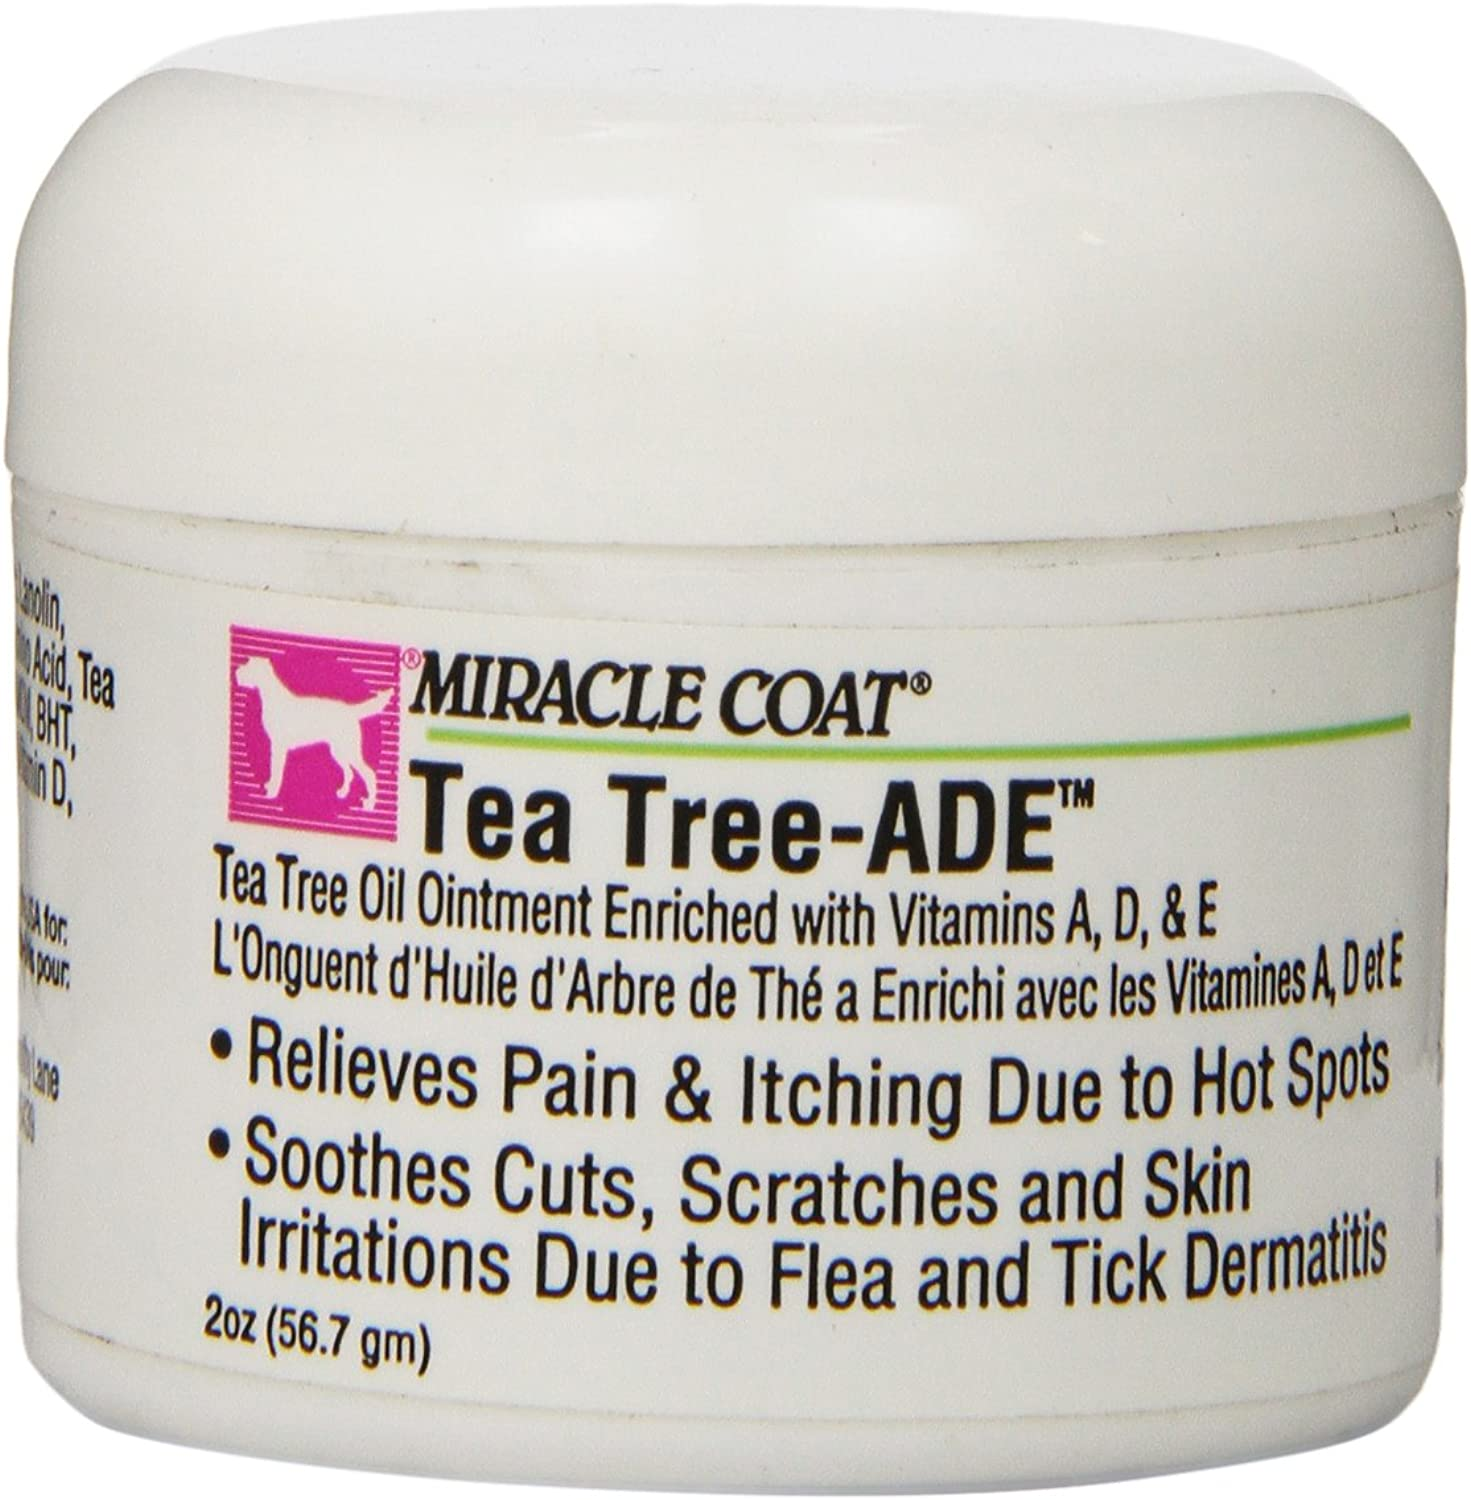 Miracle Coat Tea Tree Skin & Coat for Dogs  Ade Ointment